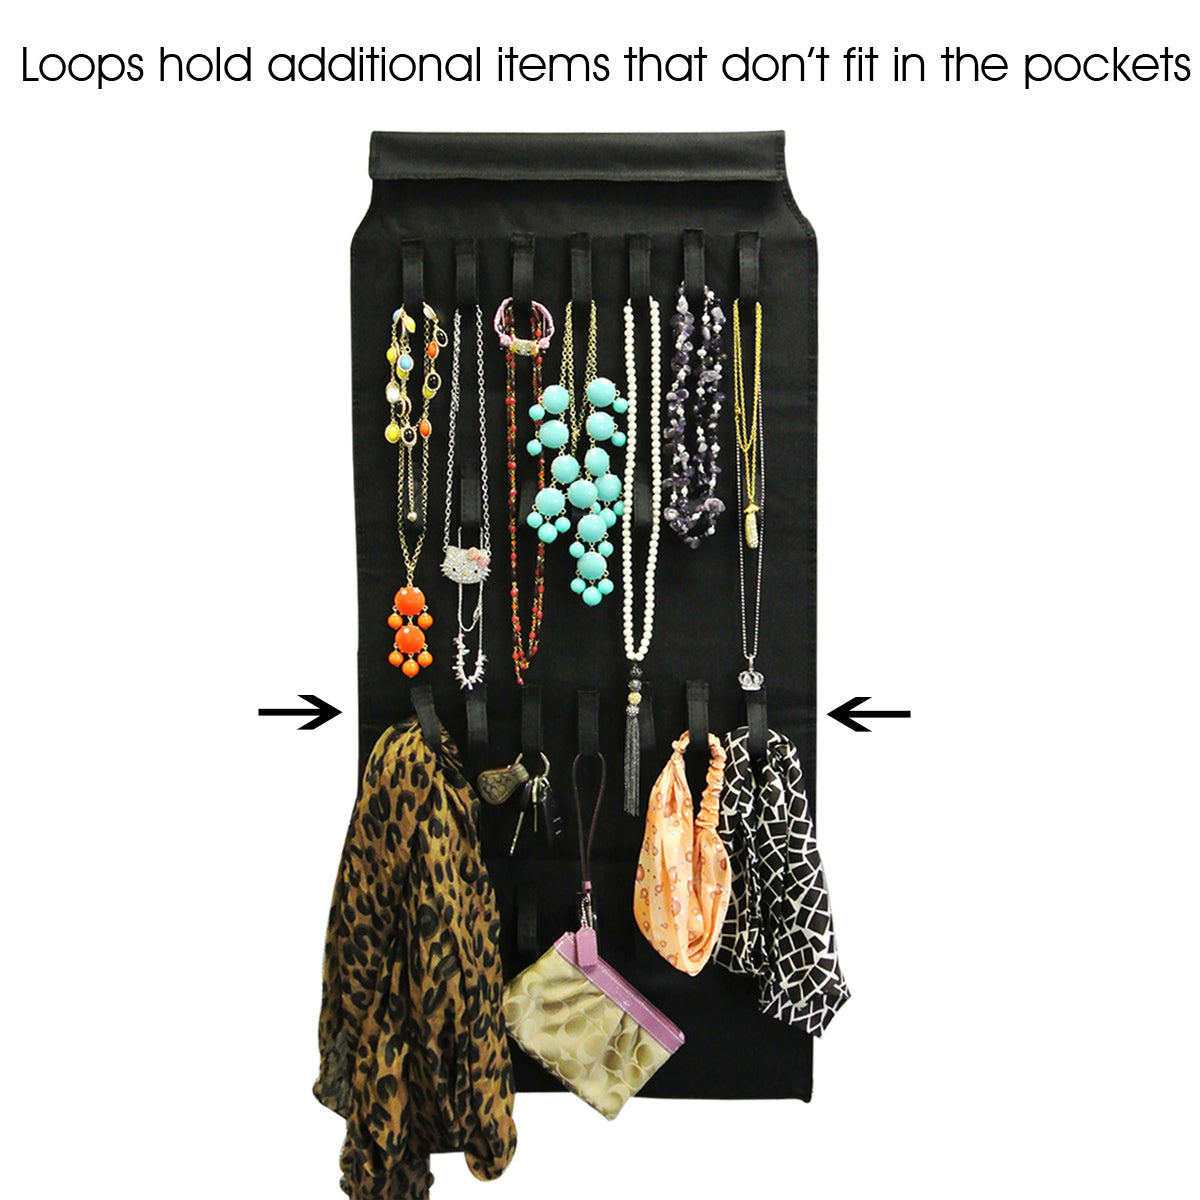 39 Pocket Black Polyester Hanging Jewelry Organizer with 28 Holding Loops